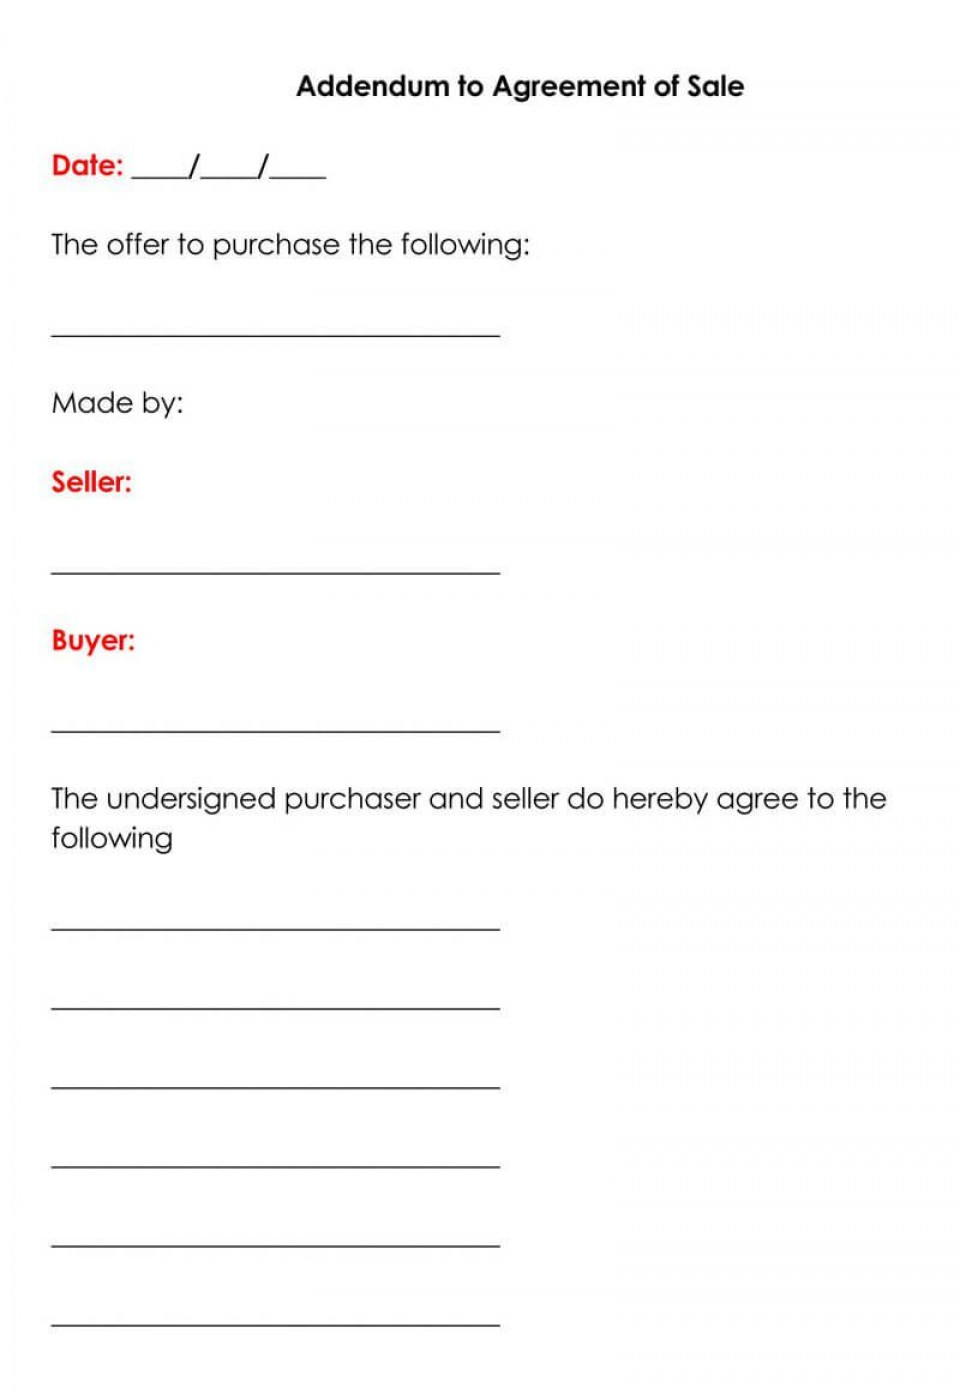 003 Fearsome Property Purchase Agreement Template Free High Resolution  Mobile Home960